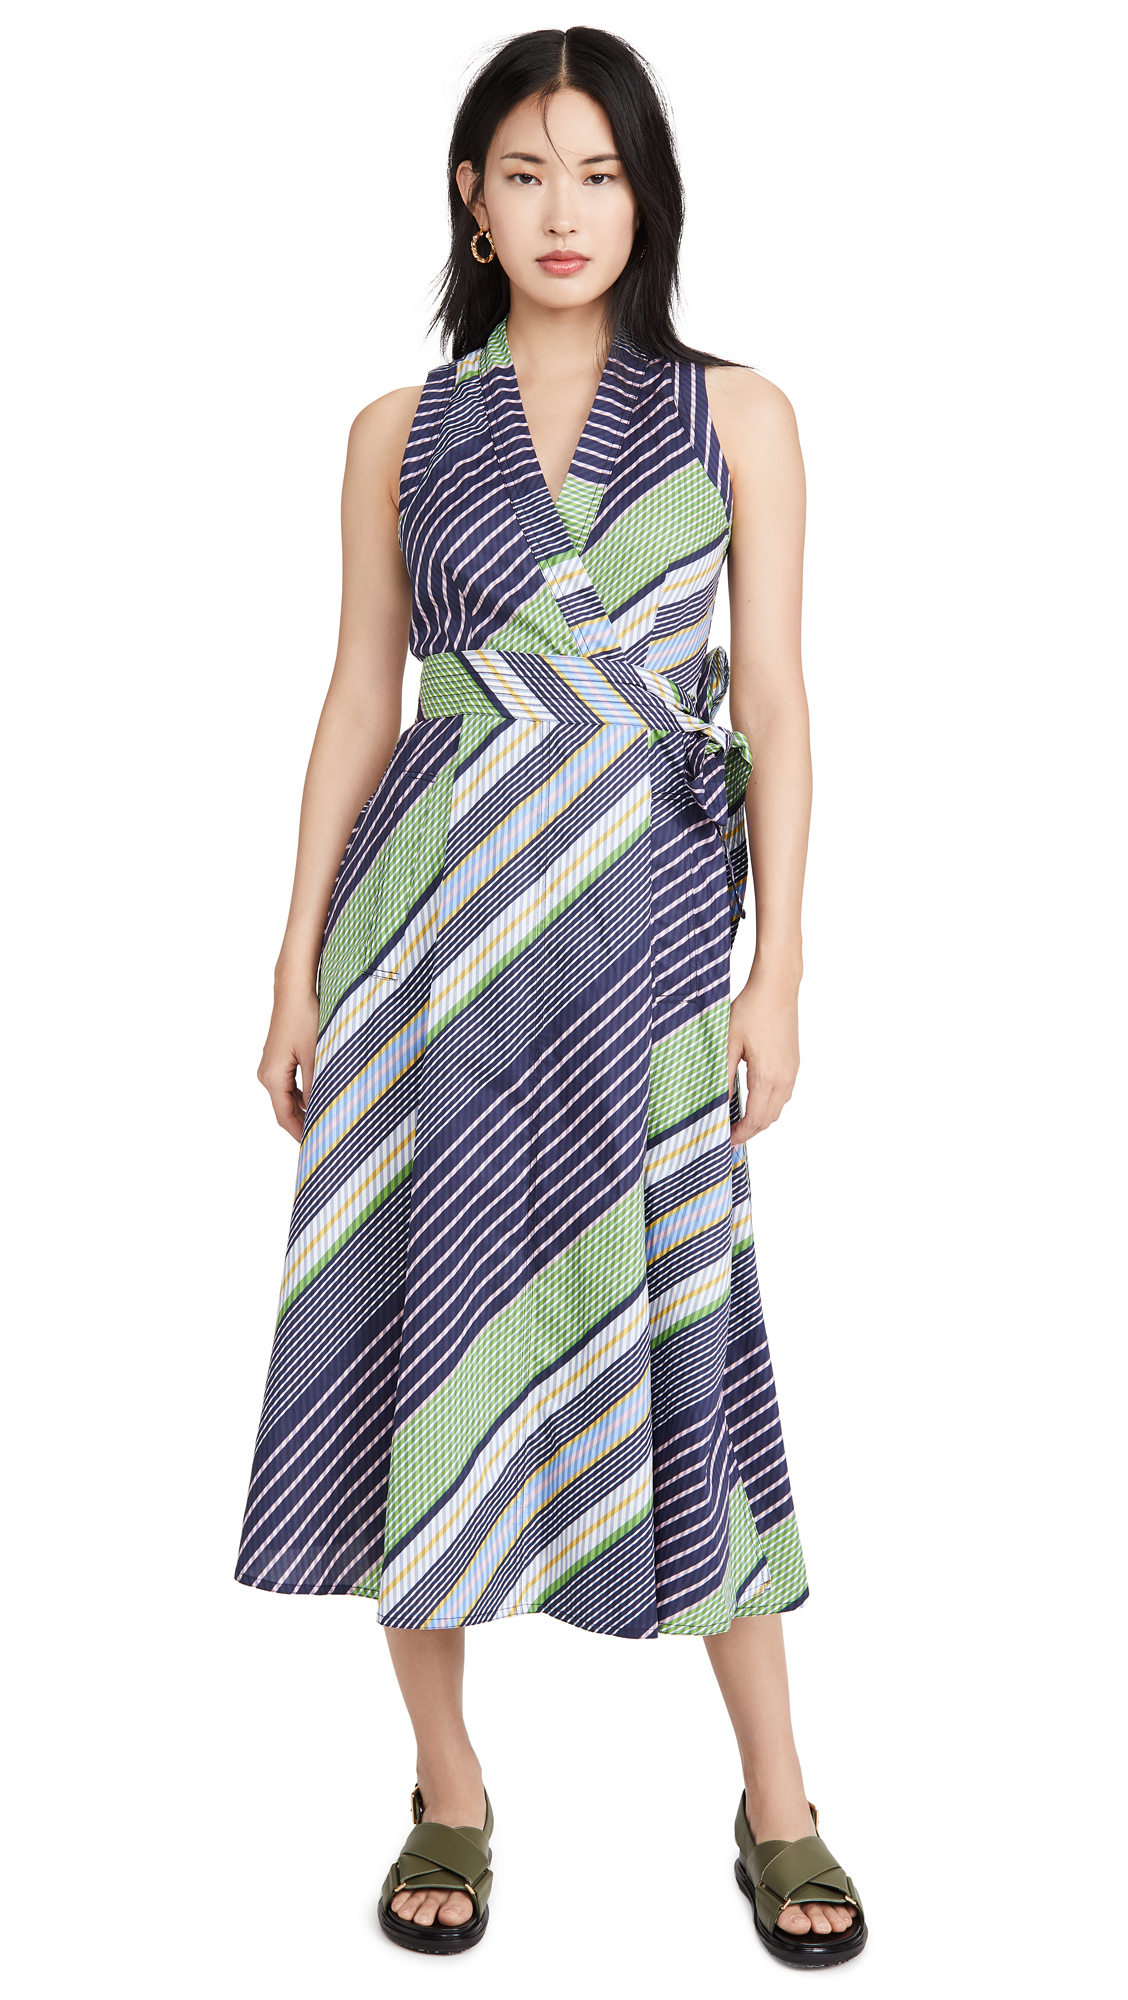 Buy Tory Burch Overprinted Wrap Dress online beautiful Tory Burch Clothing, Dresses